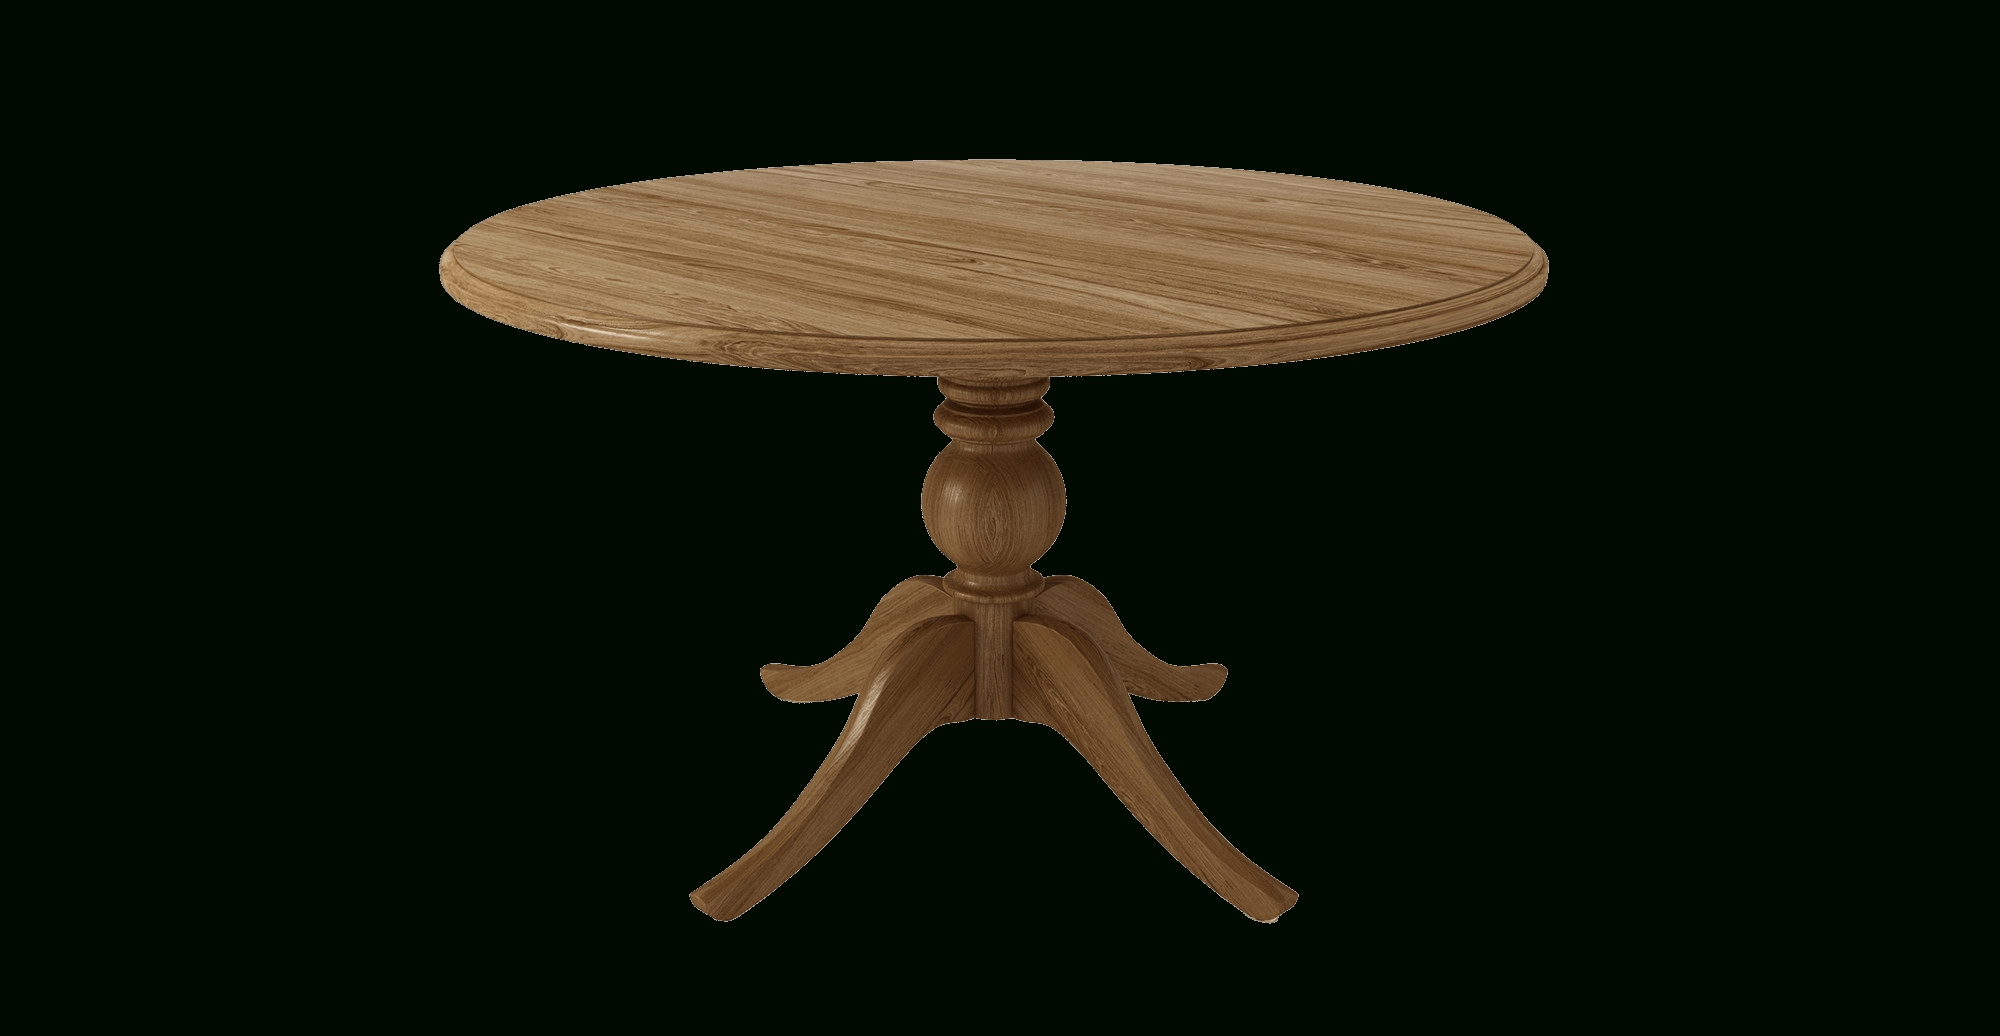 Dining Table Styles For Small Spaces | Brosa Pertaining To Most Recent Helms Rectangle Dining Tables (Image 6 of 20)